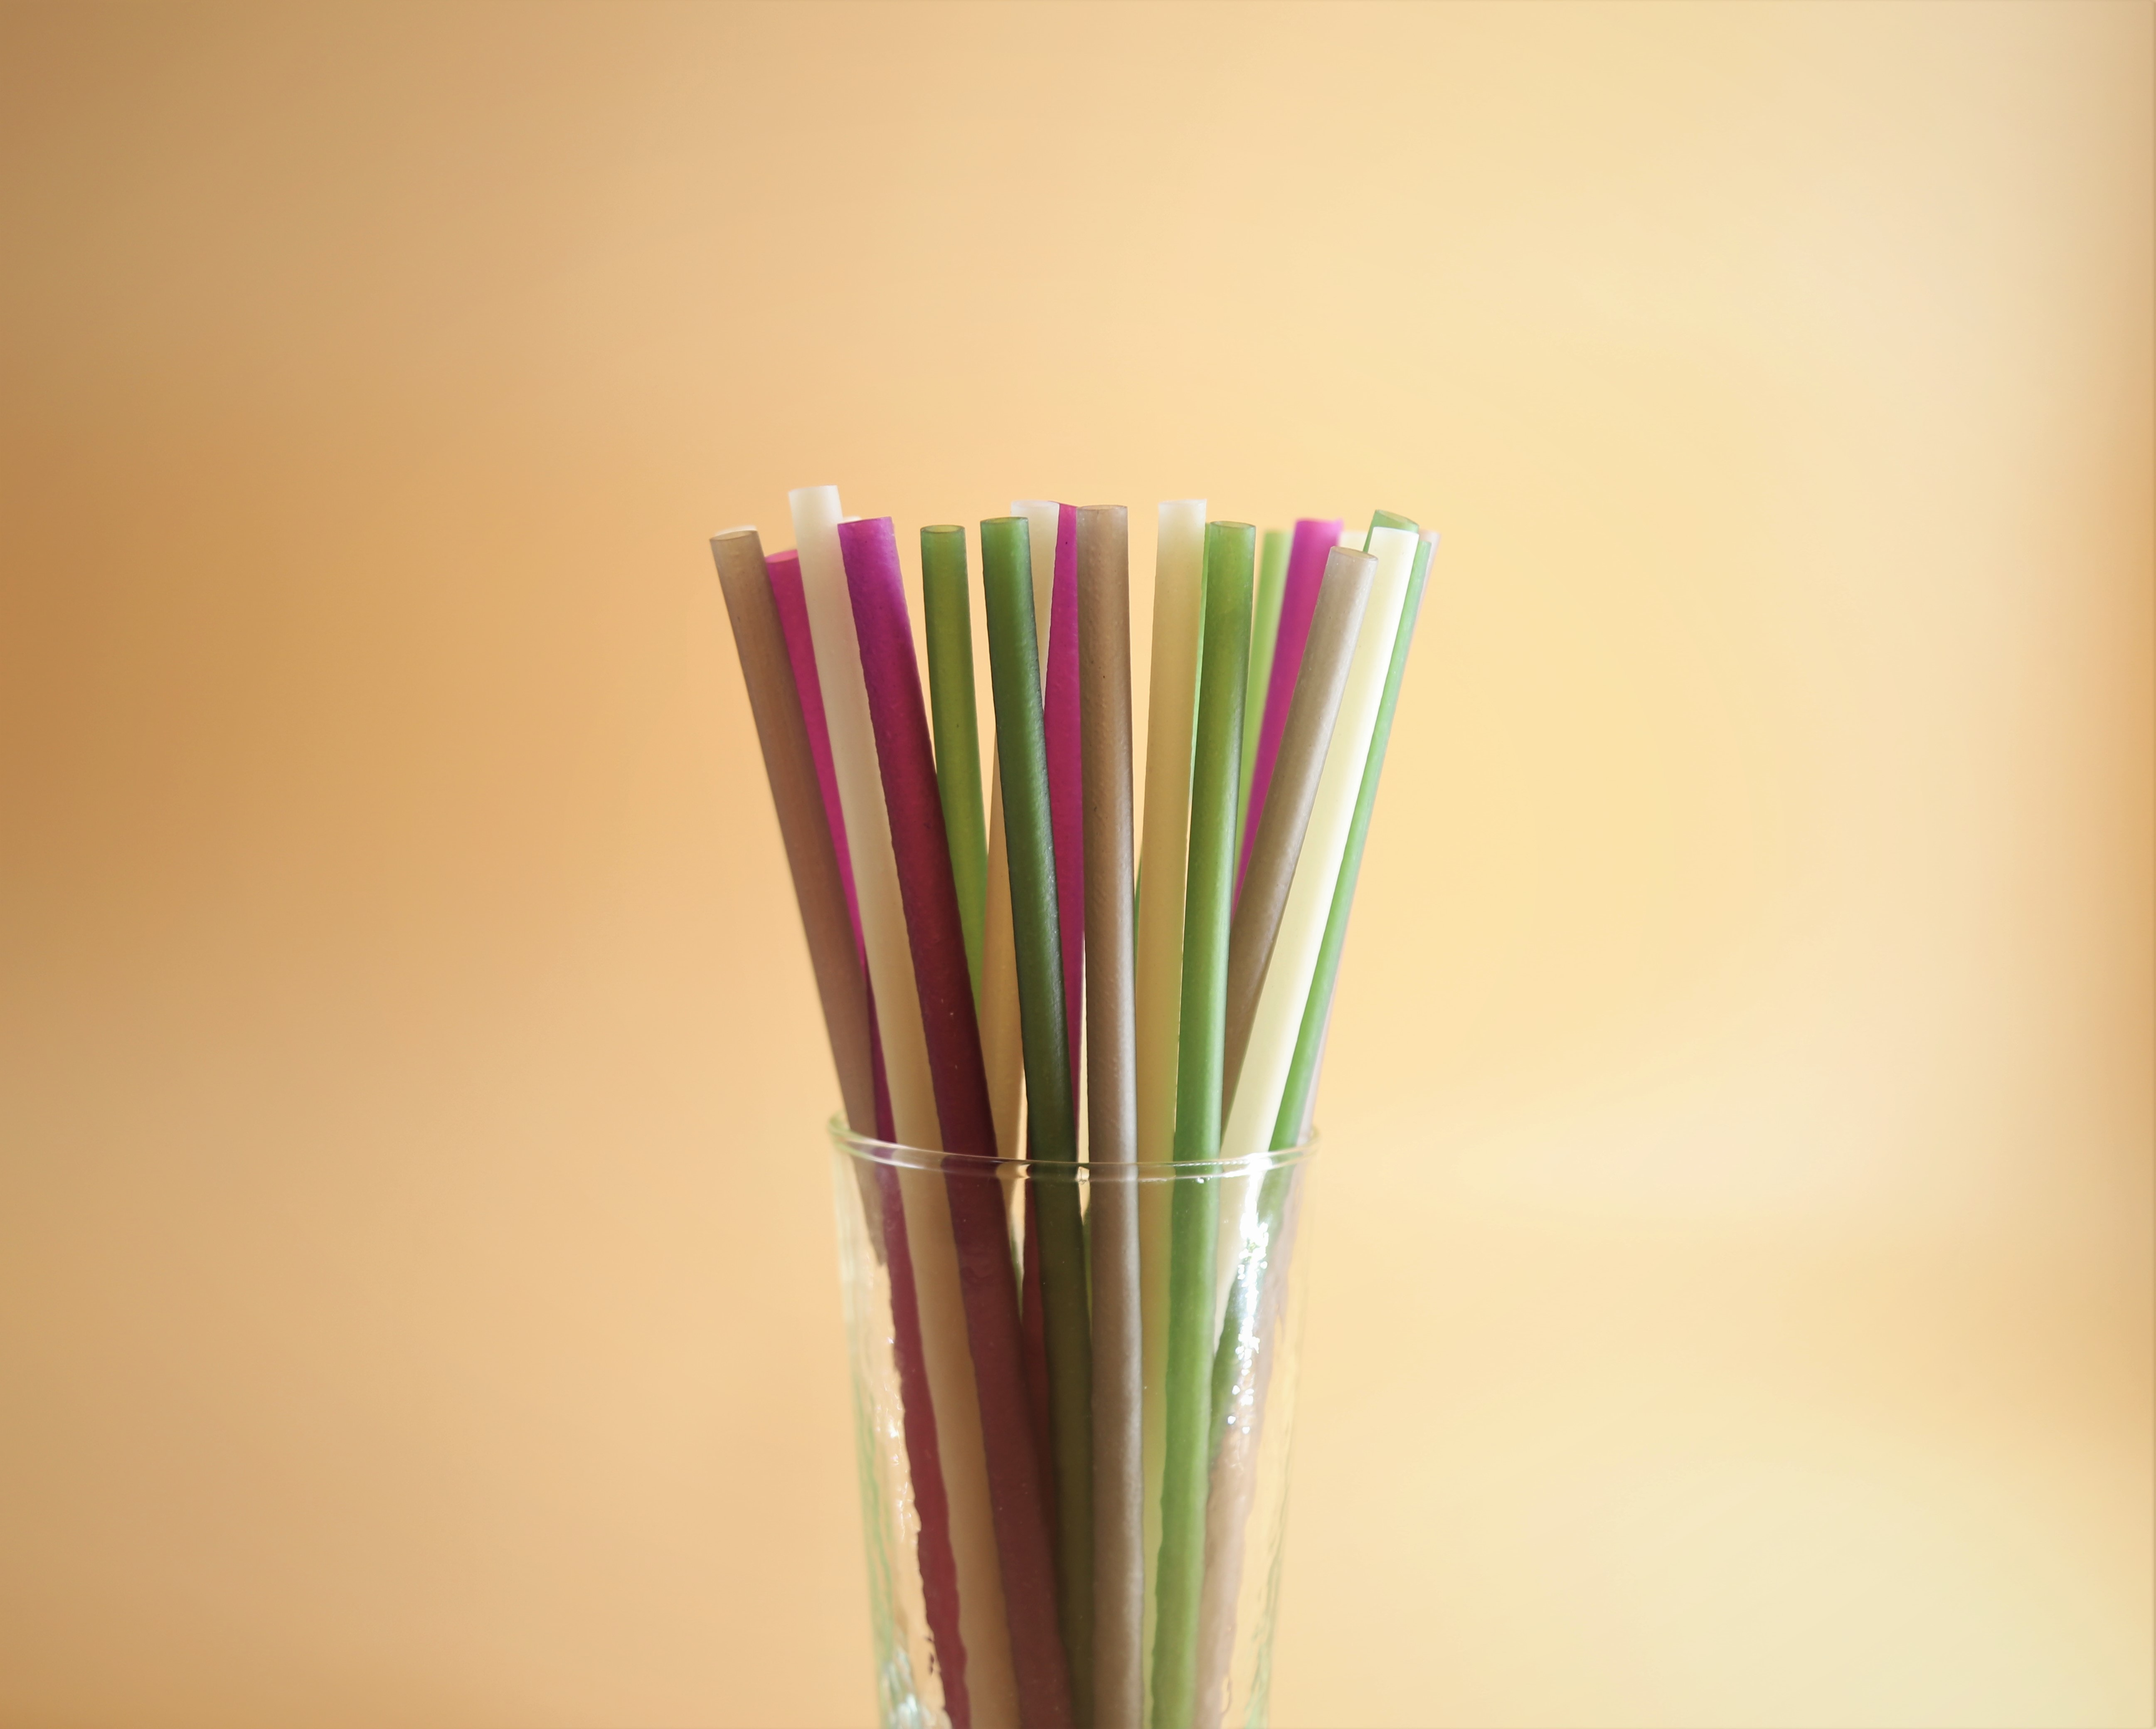 Plastic Straws in Glass